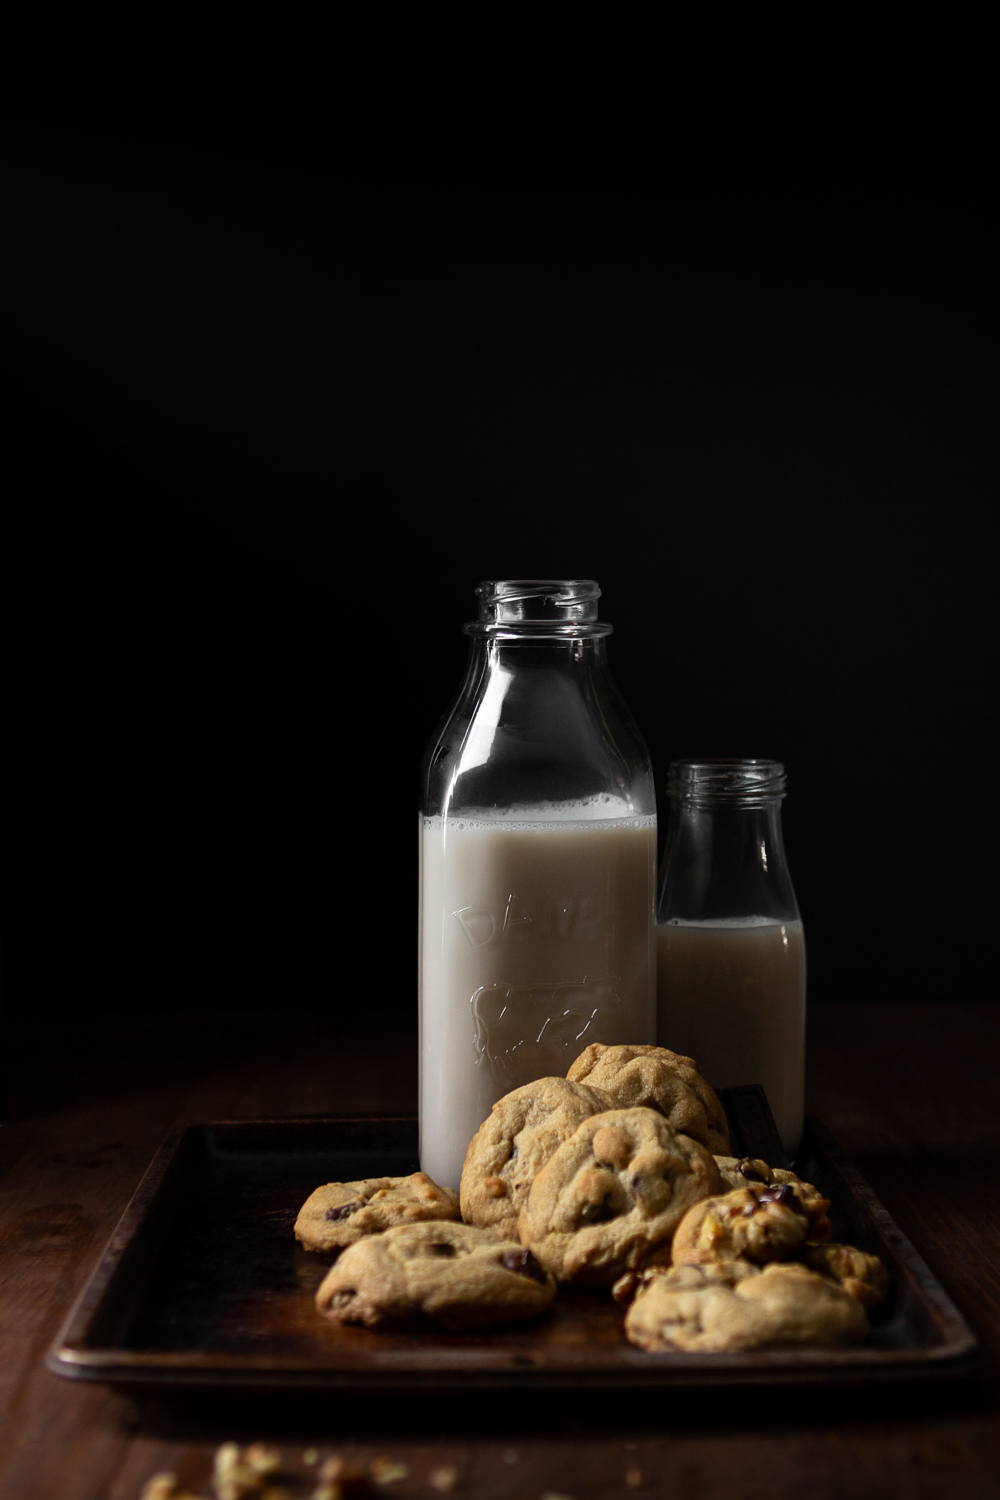 Still_Life_Set_Up-Food_Photogaphy-Cookies_04.jpg